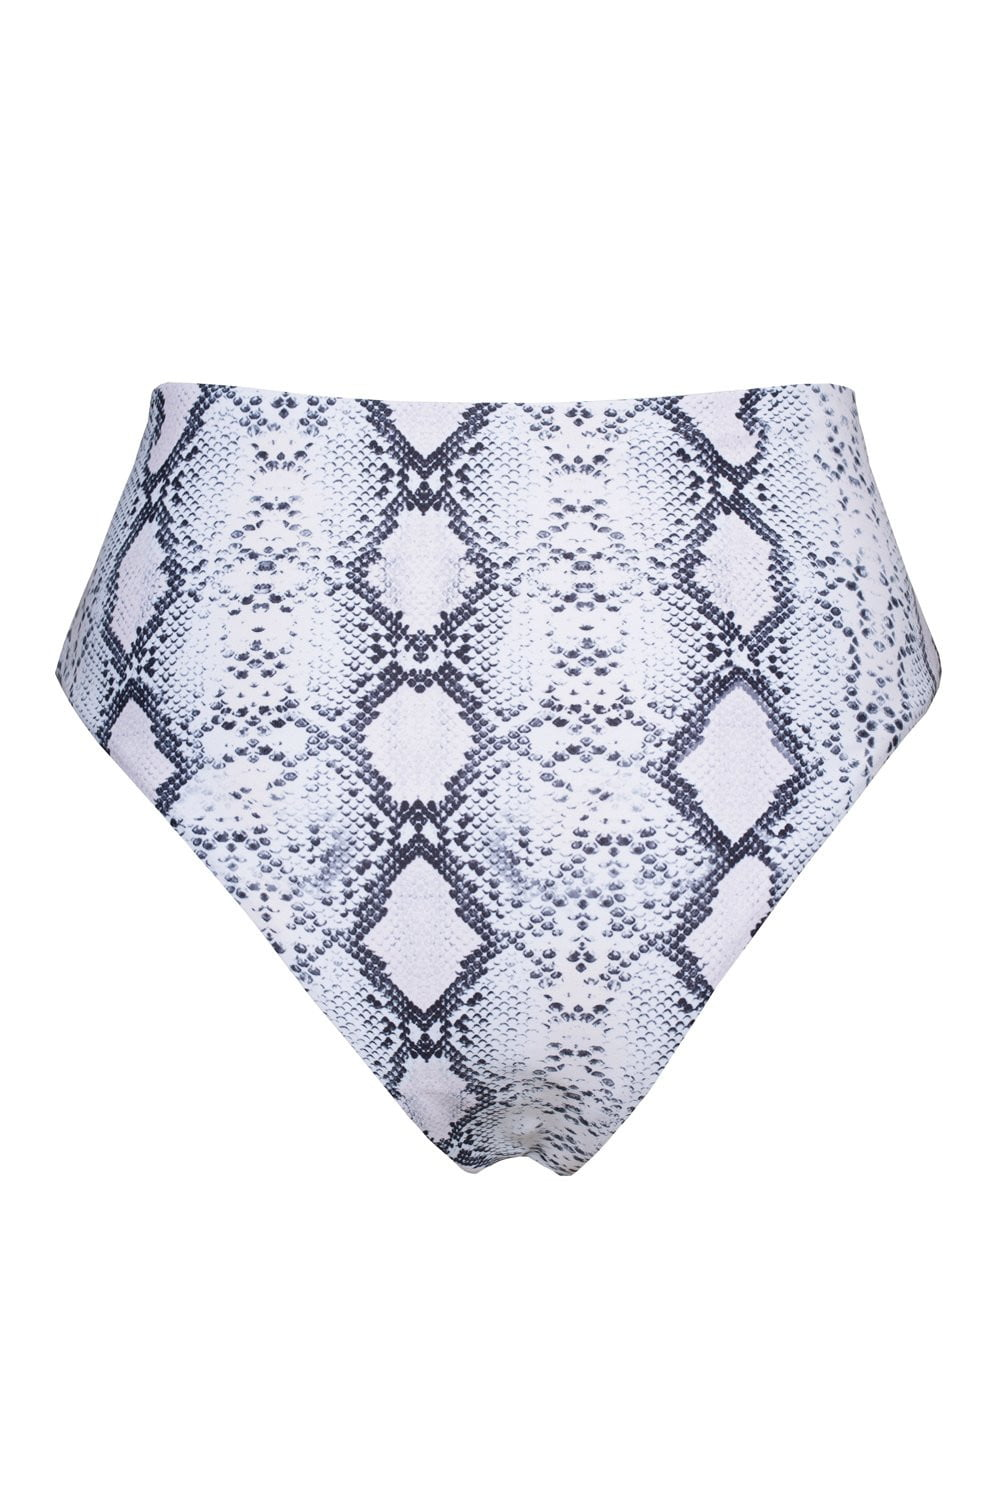 White Snakeskin High Waisted Bikini Bottoms